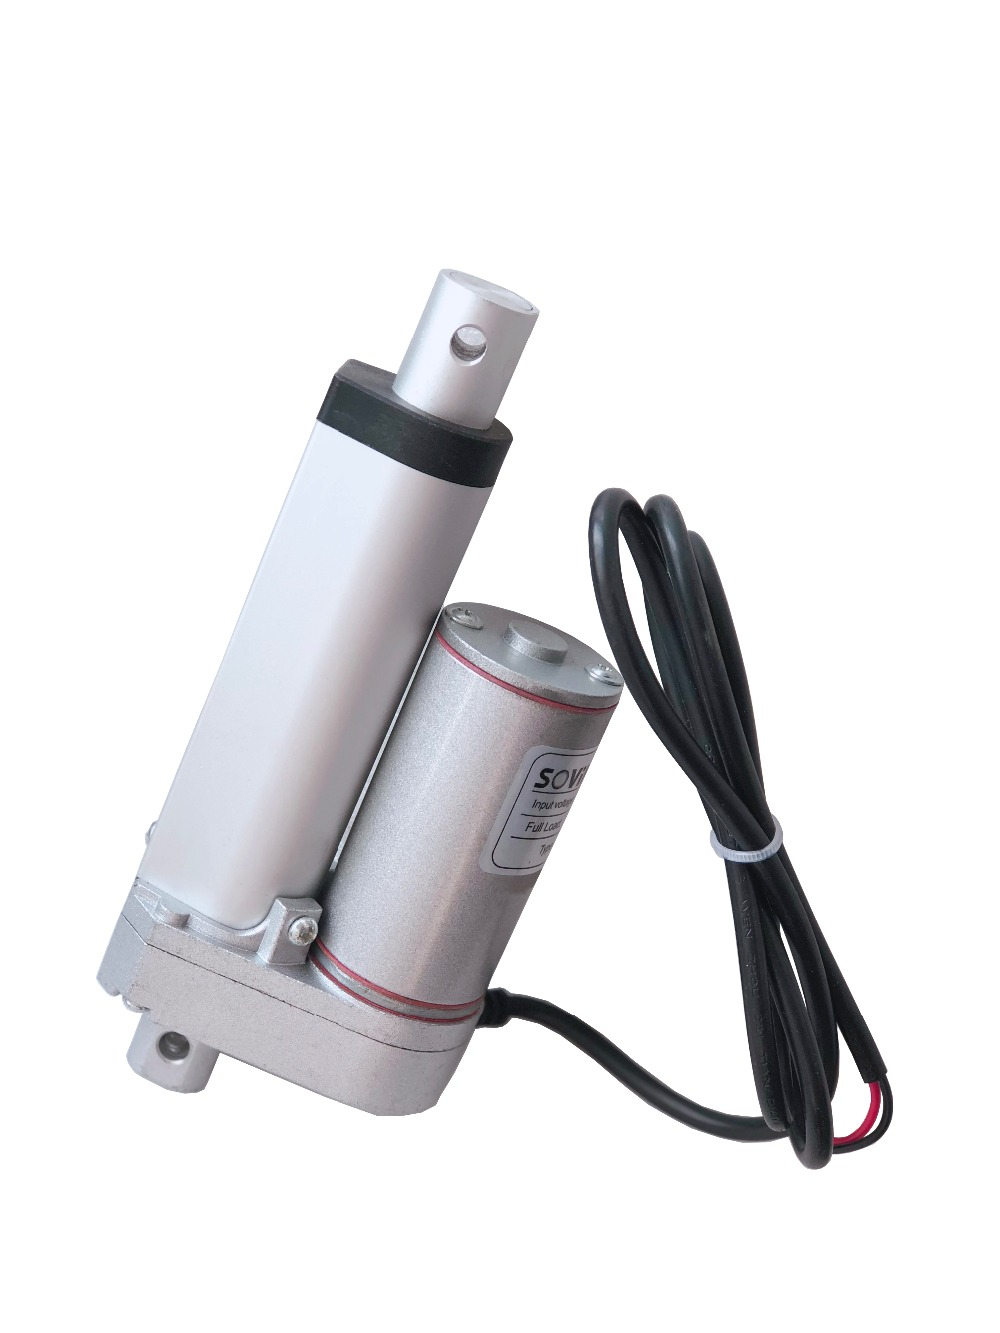 SOViK Electric Linear Actuator 2 inch 50mm Stroke 12V DC Motor Hevey Duty 750N Load Include Mounting Brackets